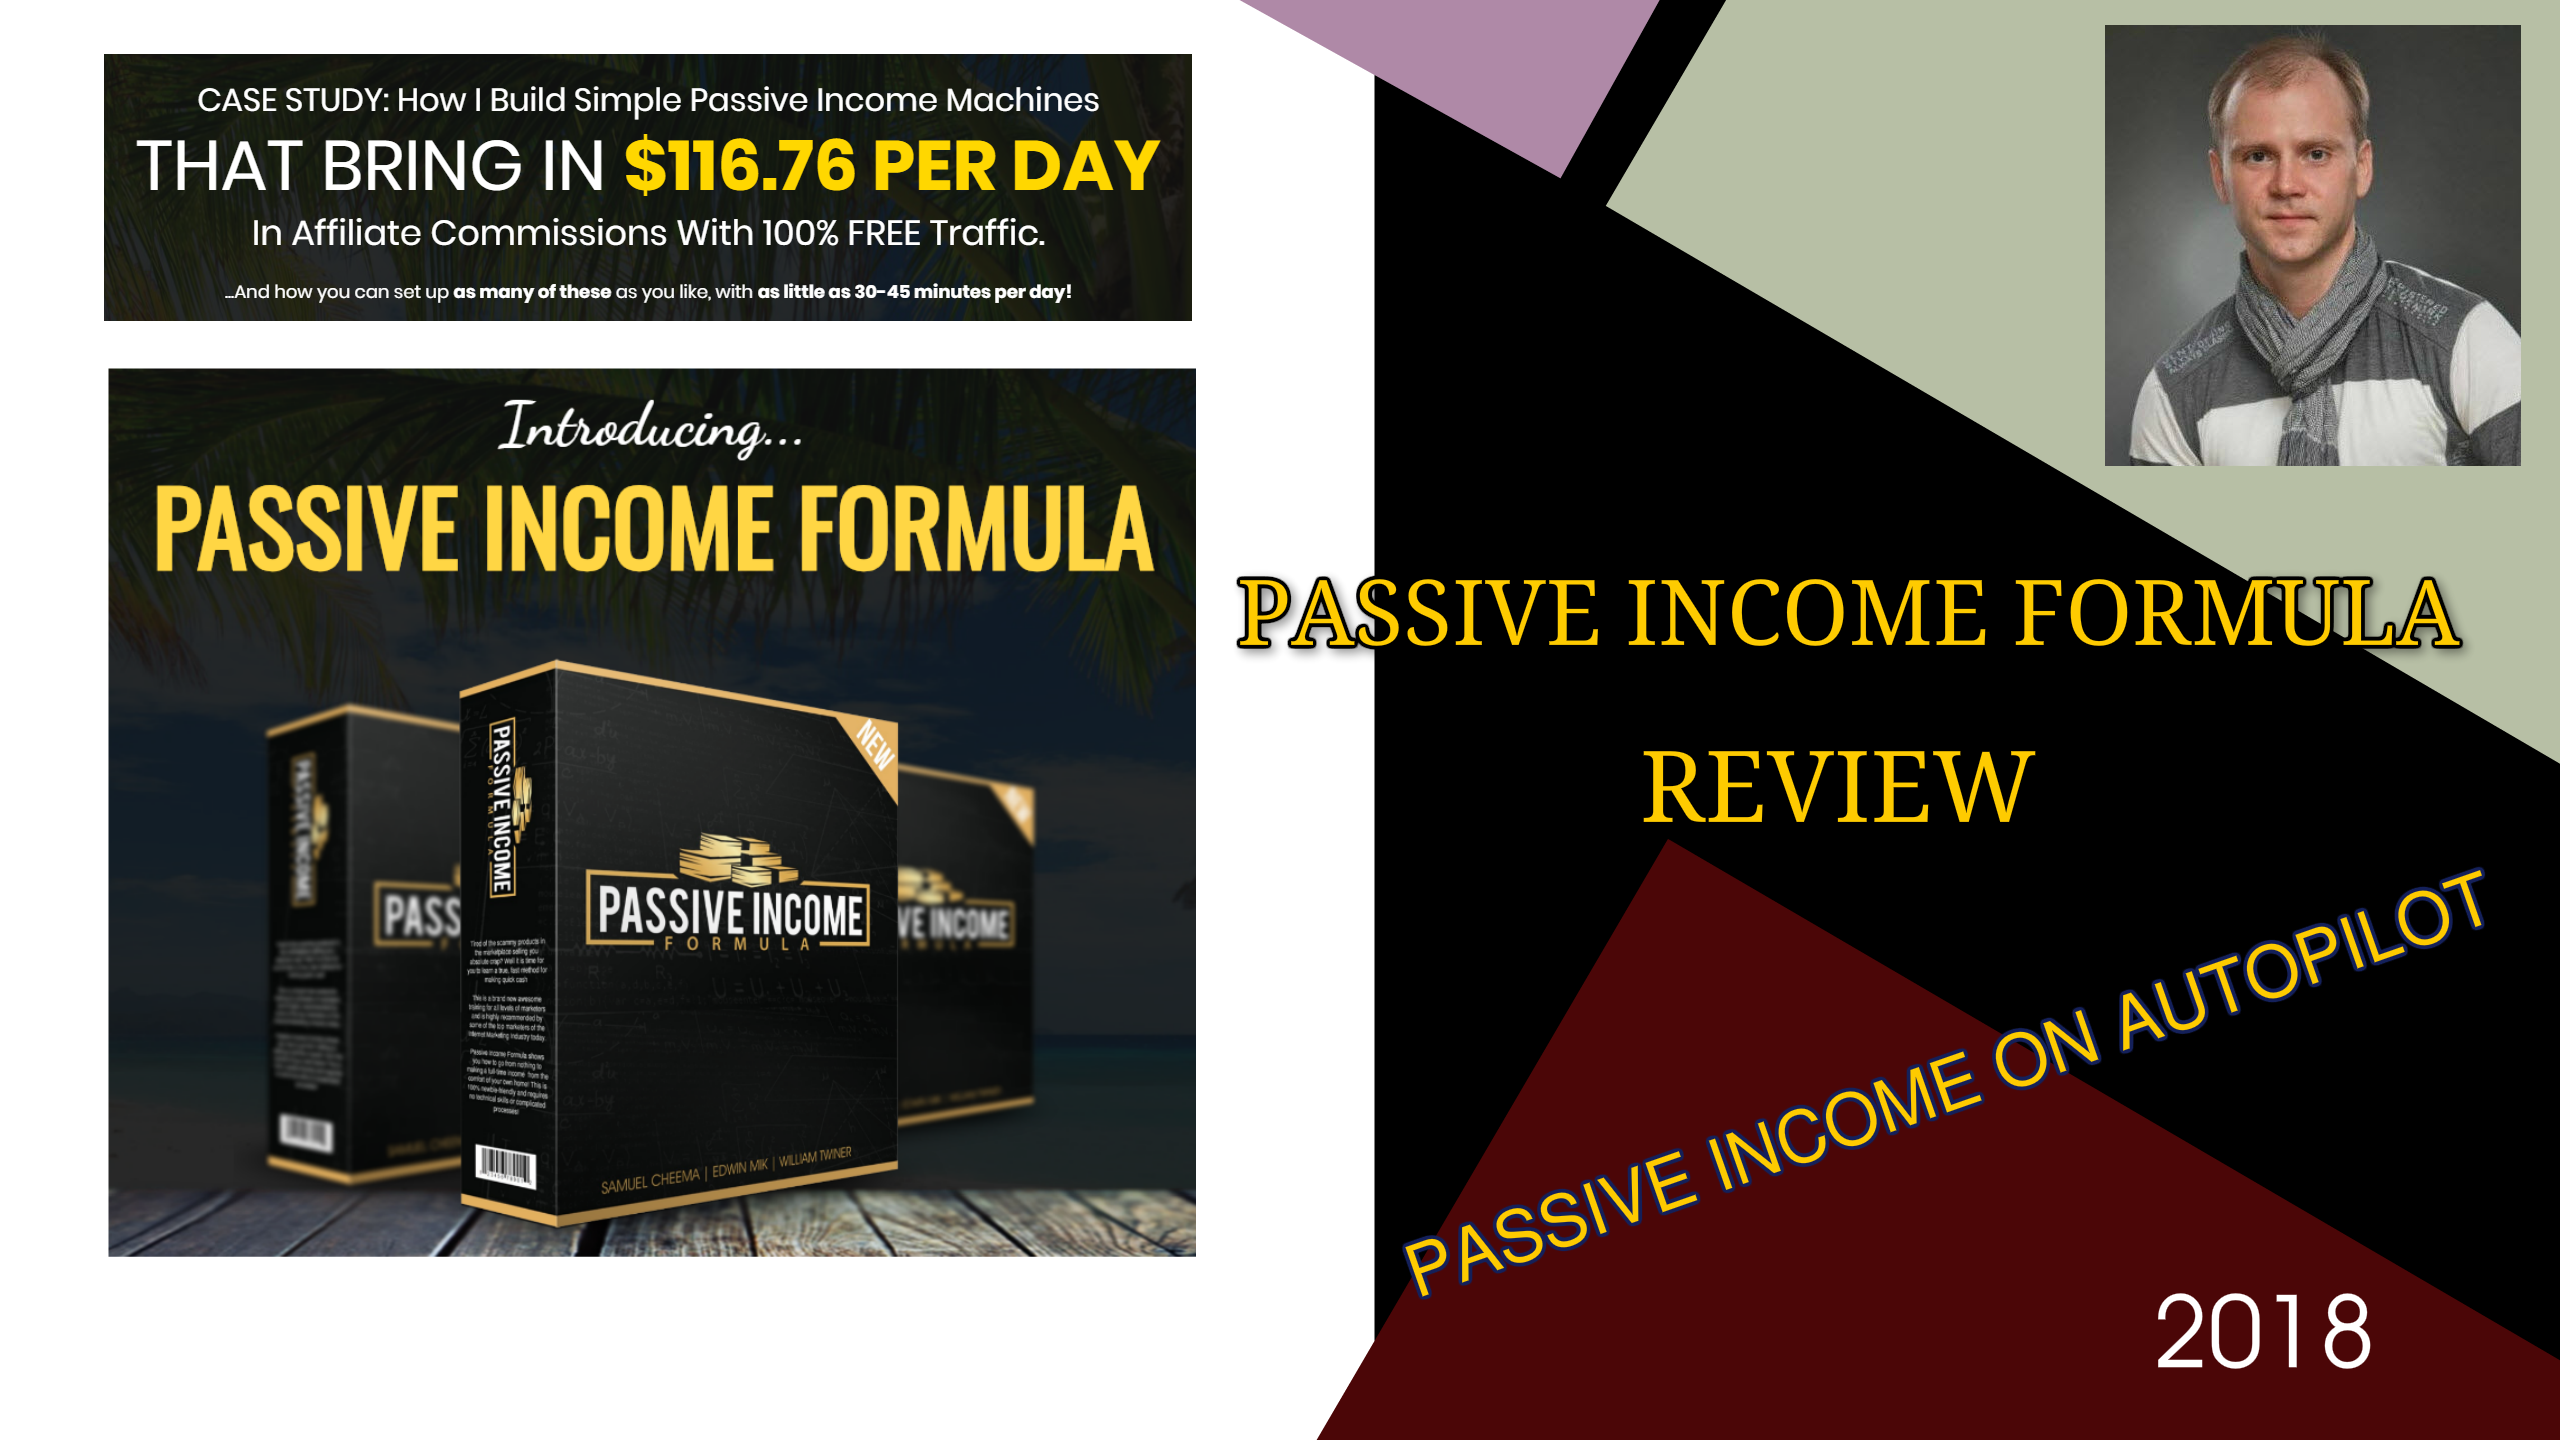 PASSIVE INCOME FORMULA REVIEW BY GENA BABAK